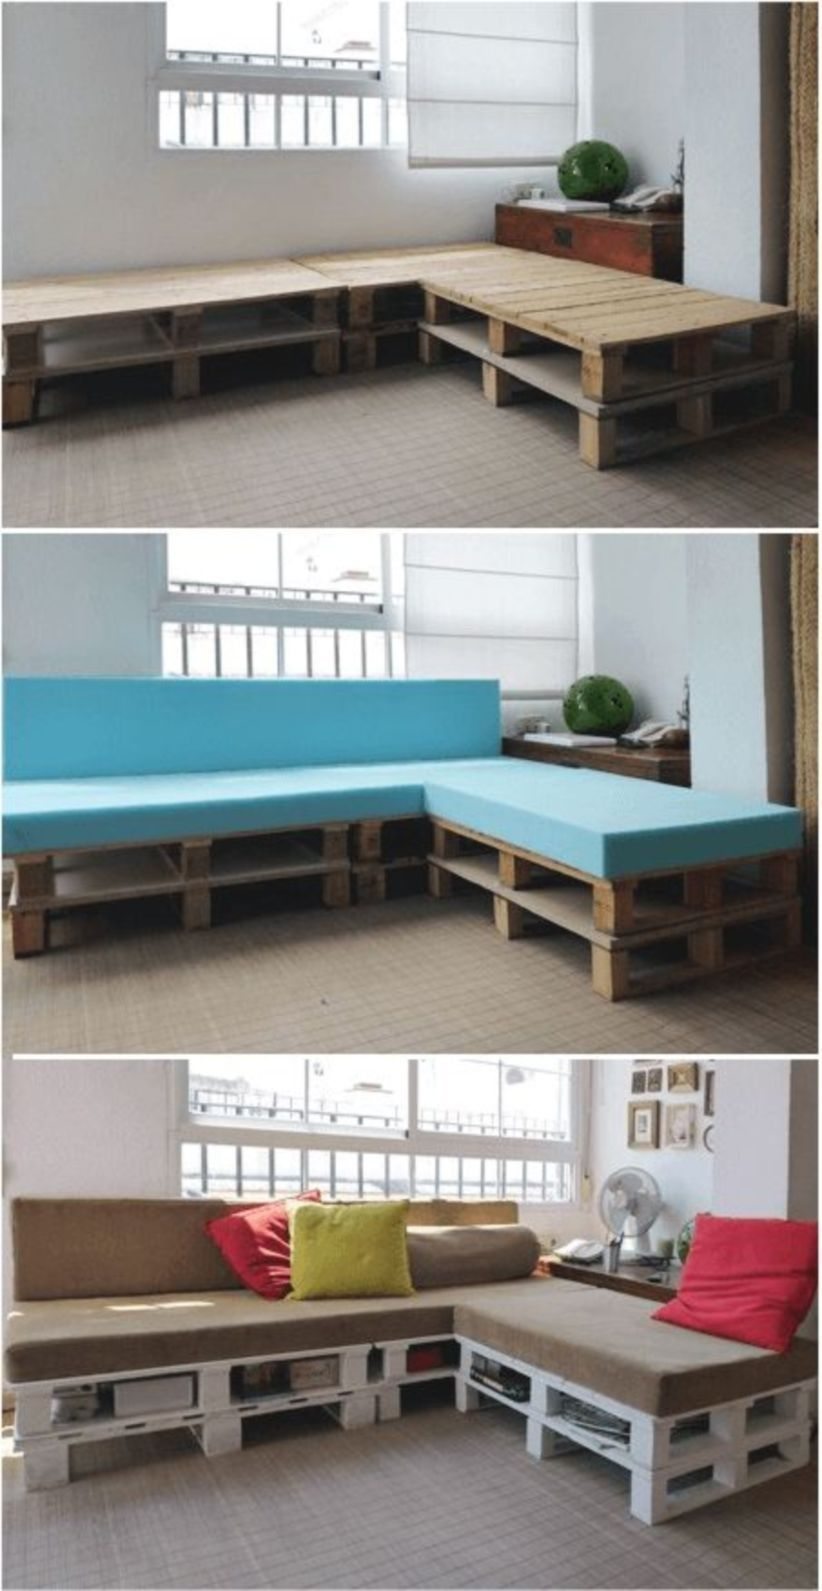 Corner Sofa With Blue Cushion. Make A Couch For The Living Room